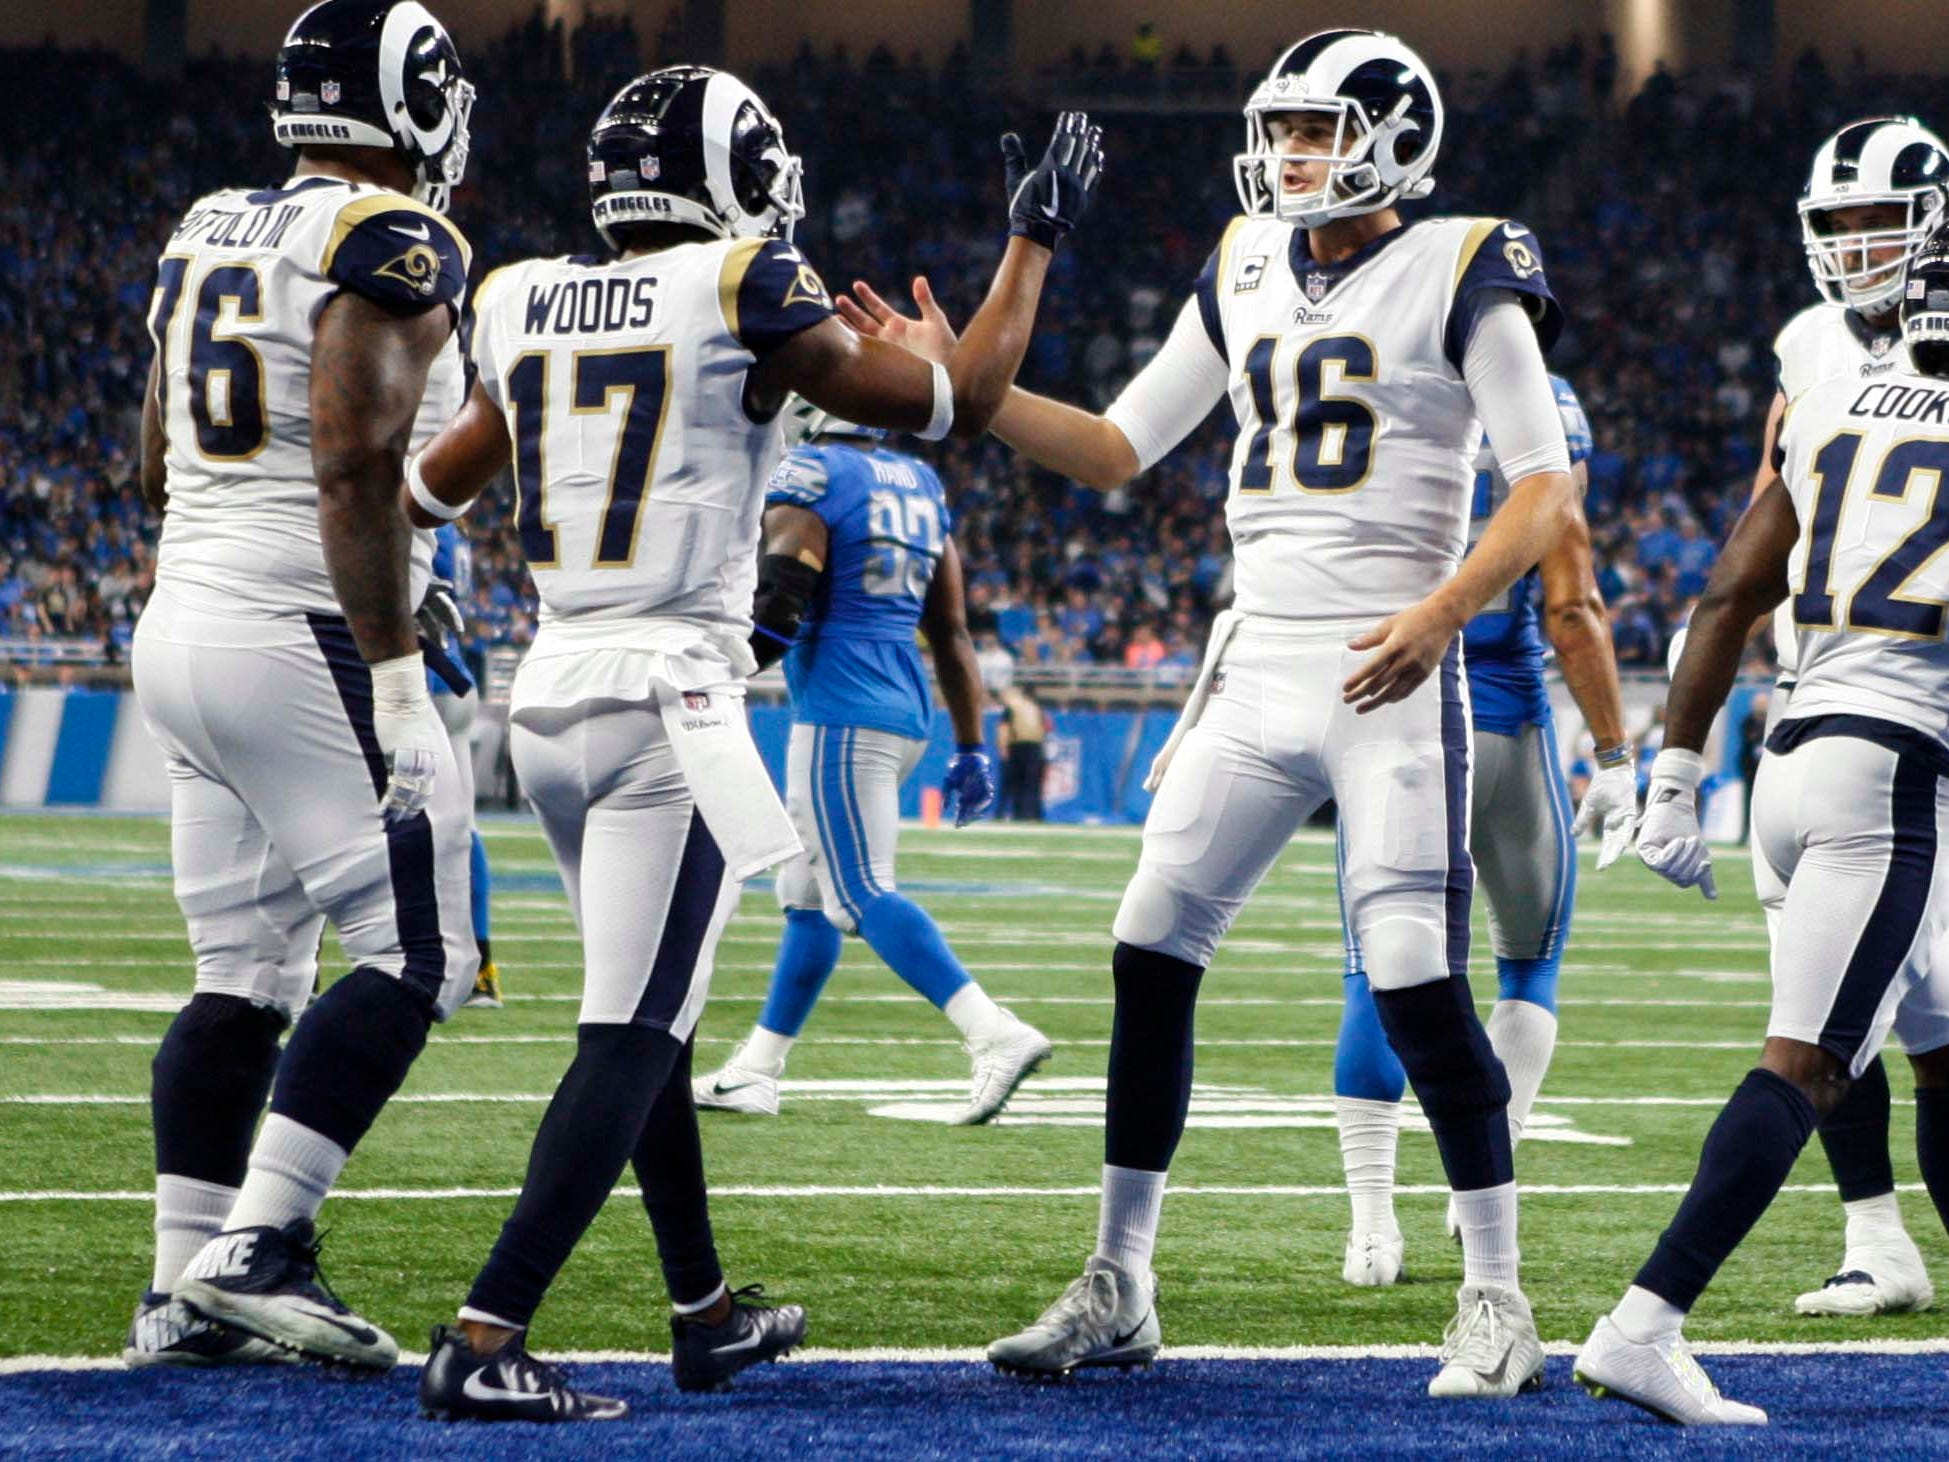 Los Angeles Rams wide receiver Robert Woods (17) and quarterback Jared Goff (16) celebrate after hooking up for a touchdown during the second quarter against the Detroit Lions at Ford Field.